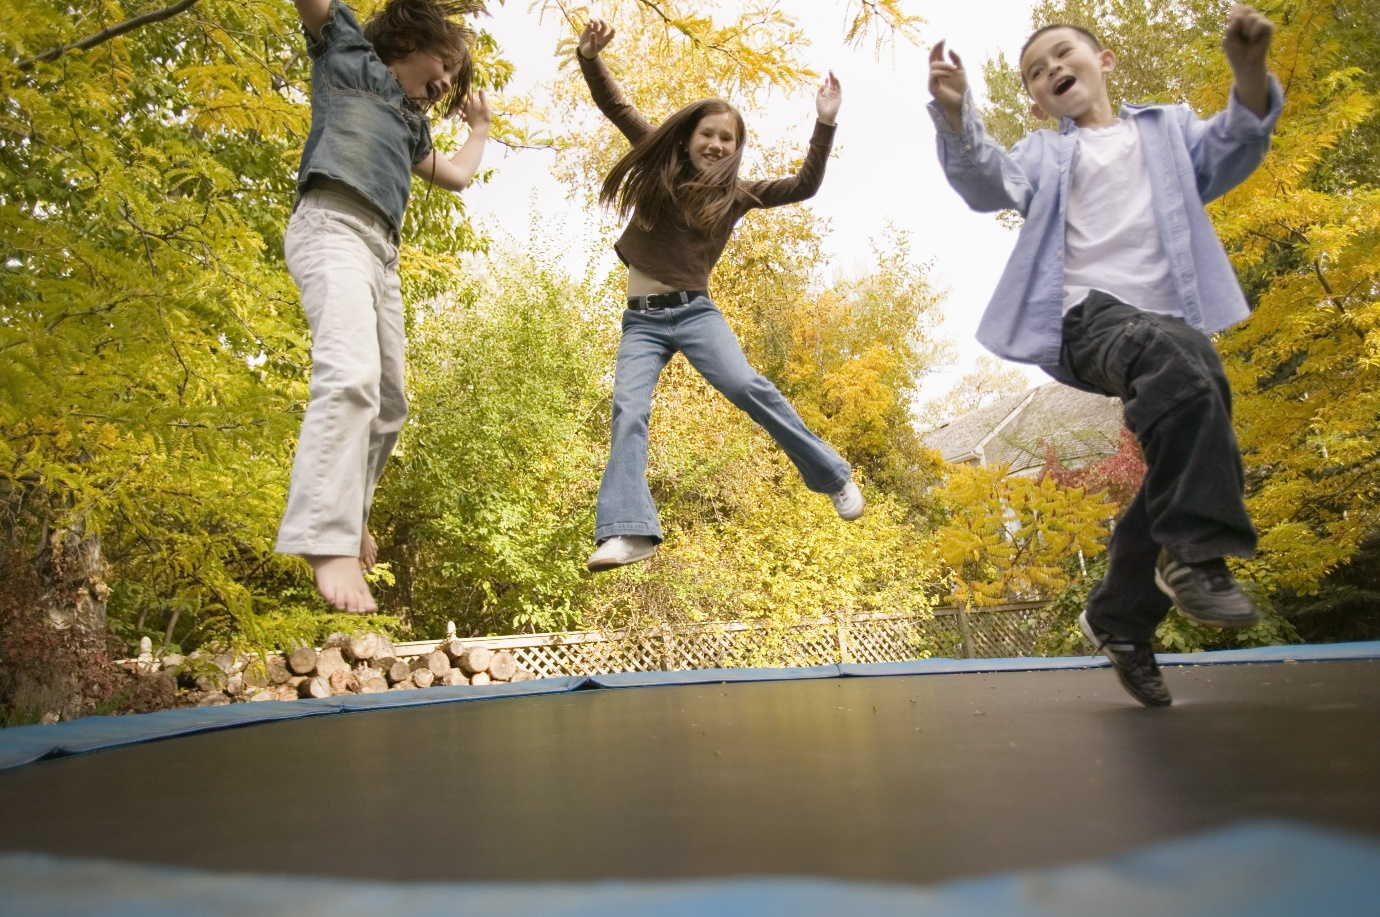 2 Tips When Searching for Affordable Trampolines for Kids